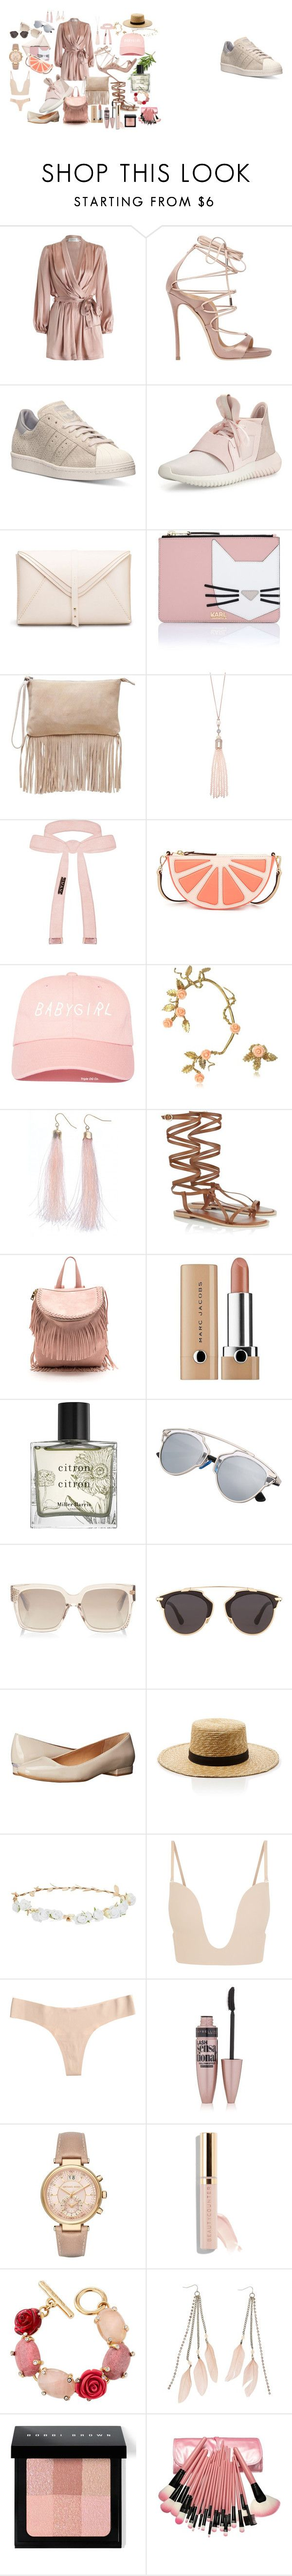 """pastel Satine"" by veronic-s on Polyvore featuring Zimmermann, Dsquared2, adidas, Karl Lagerfeld, Zign, Oasis, Cybele, Kate Spade, Bernard Delettrez and 3AM Imports"